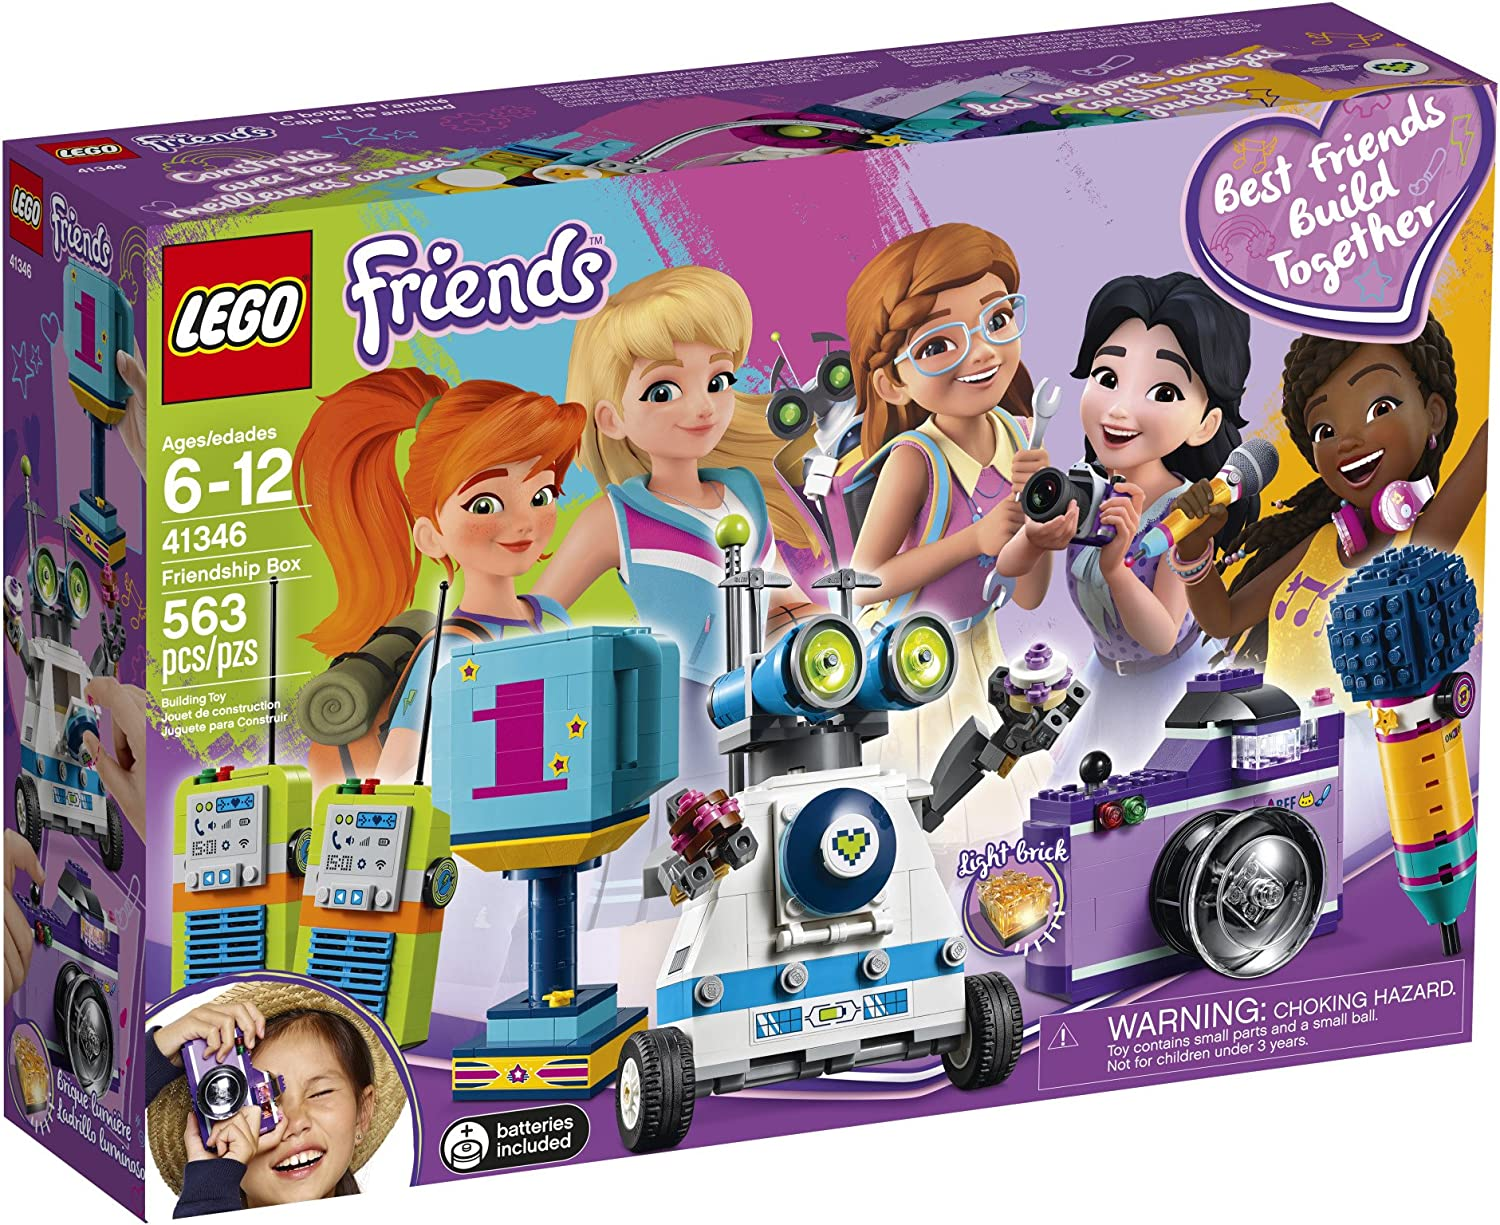 Builds 5 Items 563 pieces New LEGO Friends 41346 Heartlake Friendship Box Set